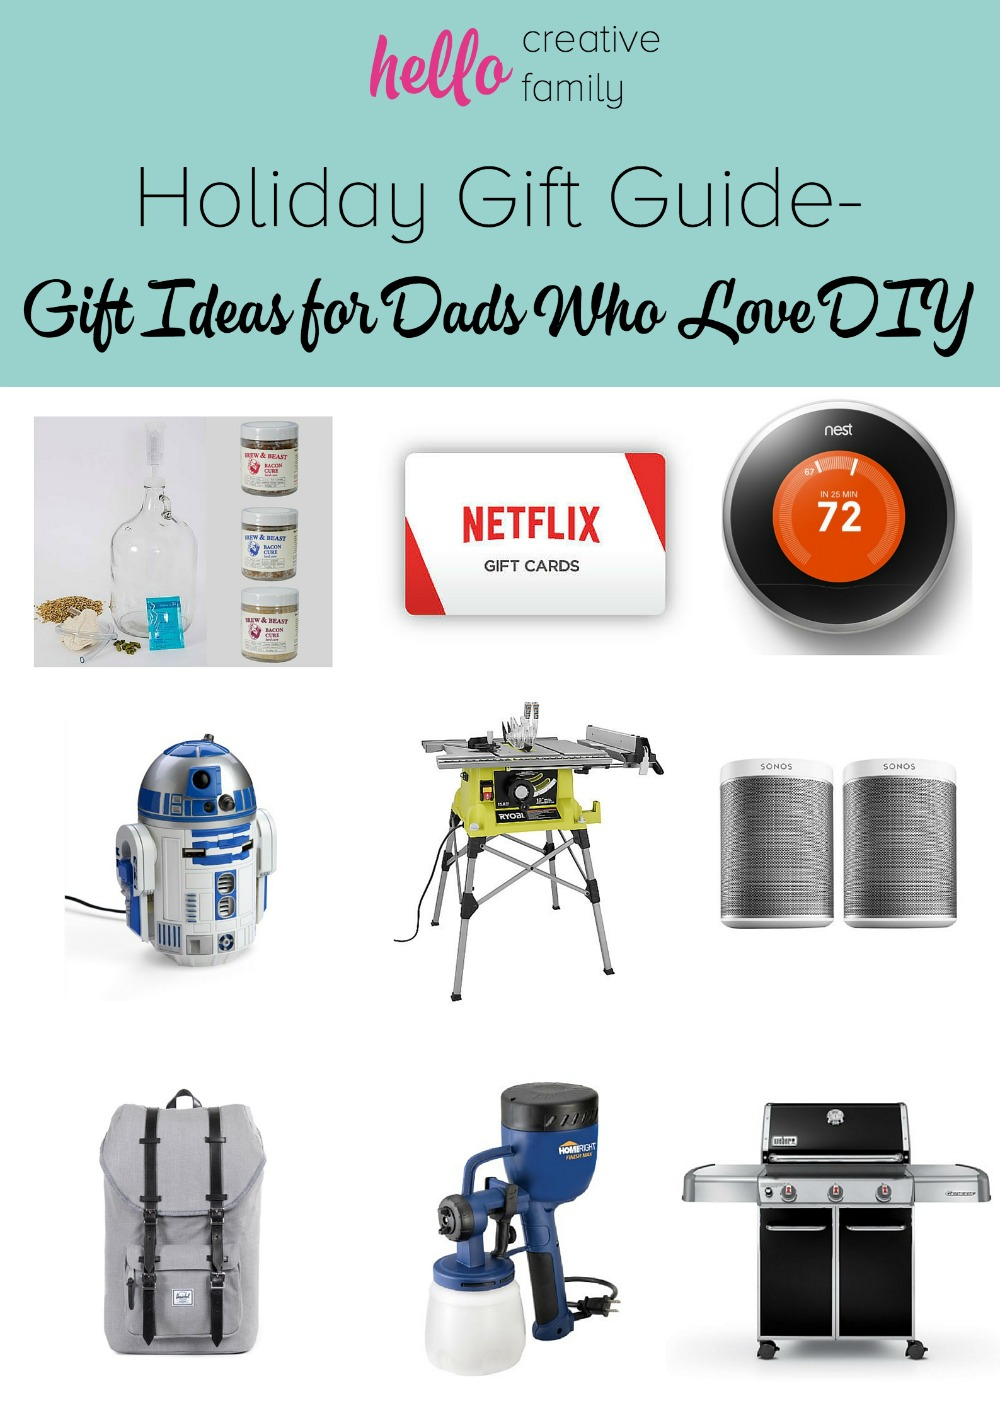 Hello Creative Family Holiday Gift Guide For Dads Who Love DIY